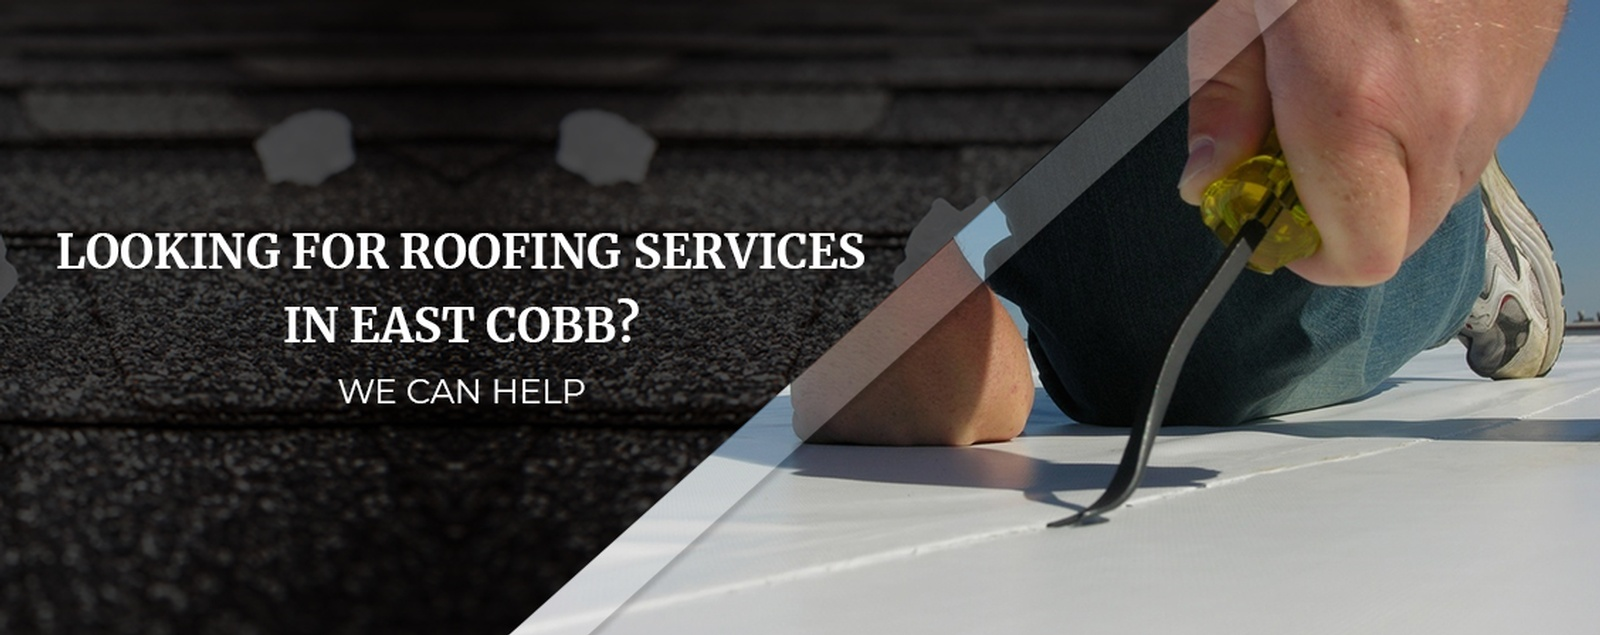 Looking For Roofing Services In East Cobb We Can Help